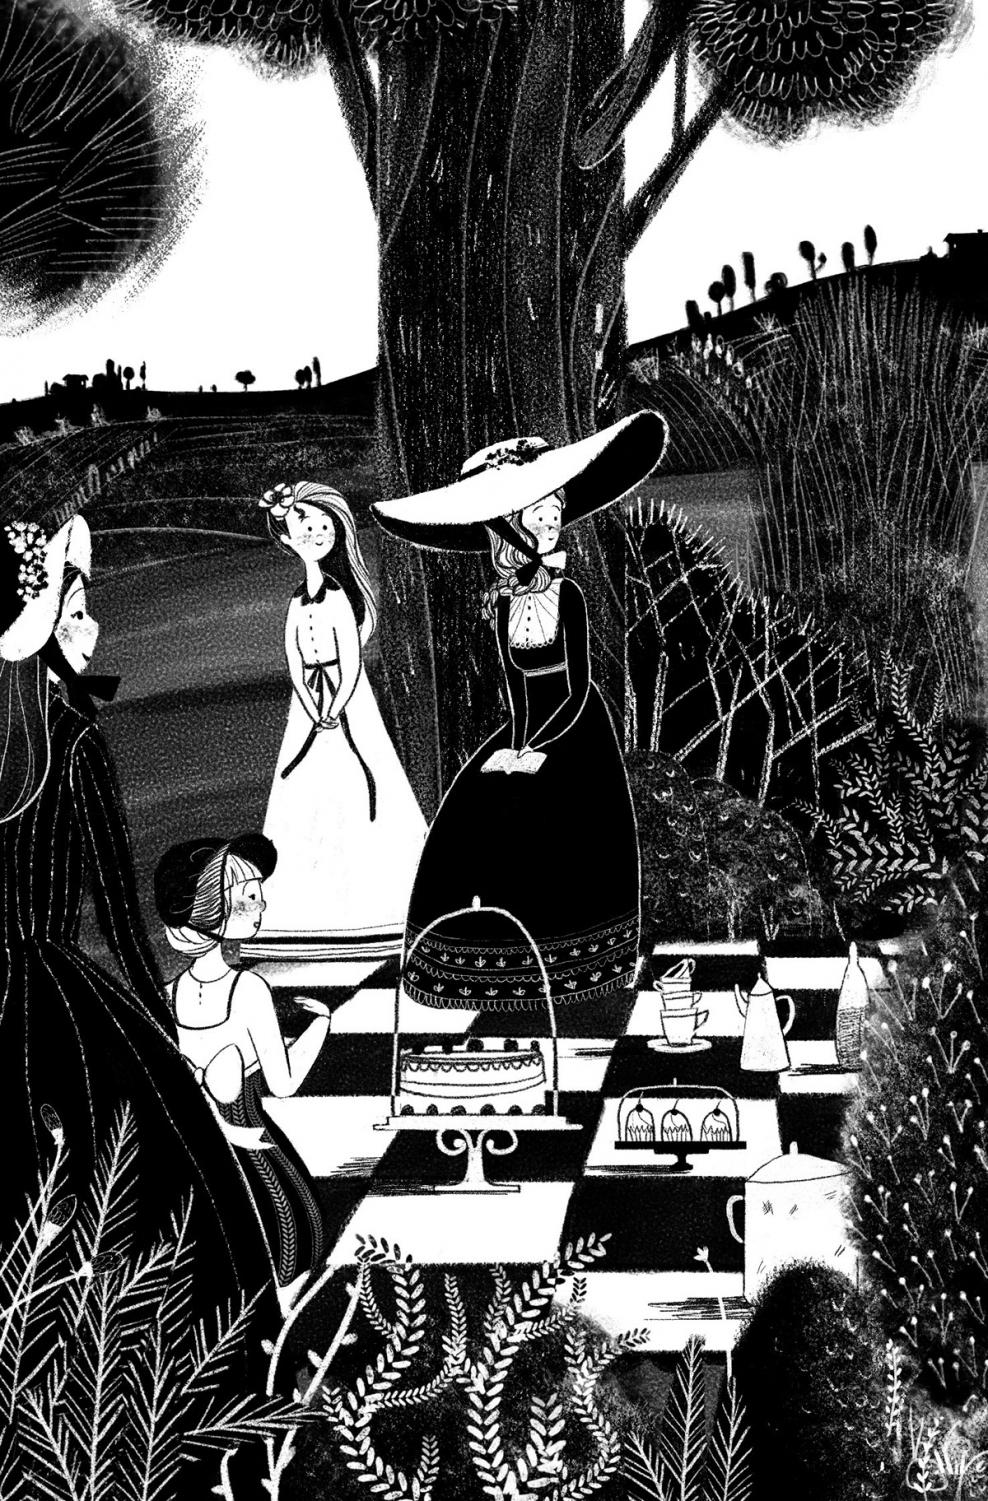 An illustration inspired by a scene in the novel